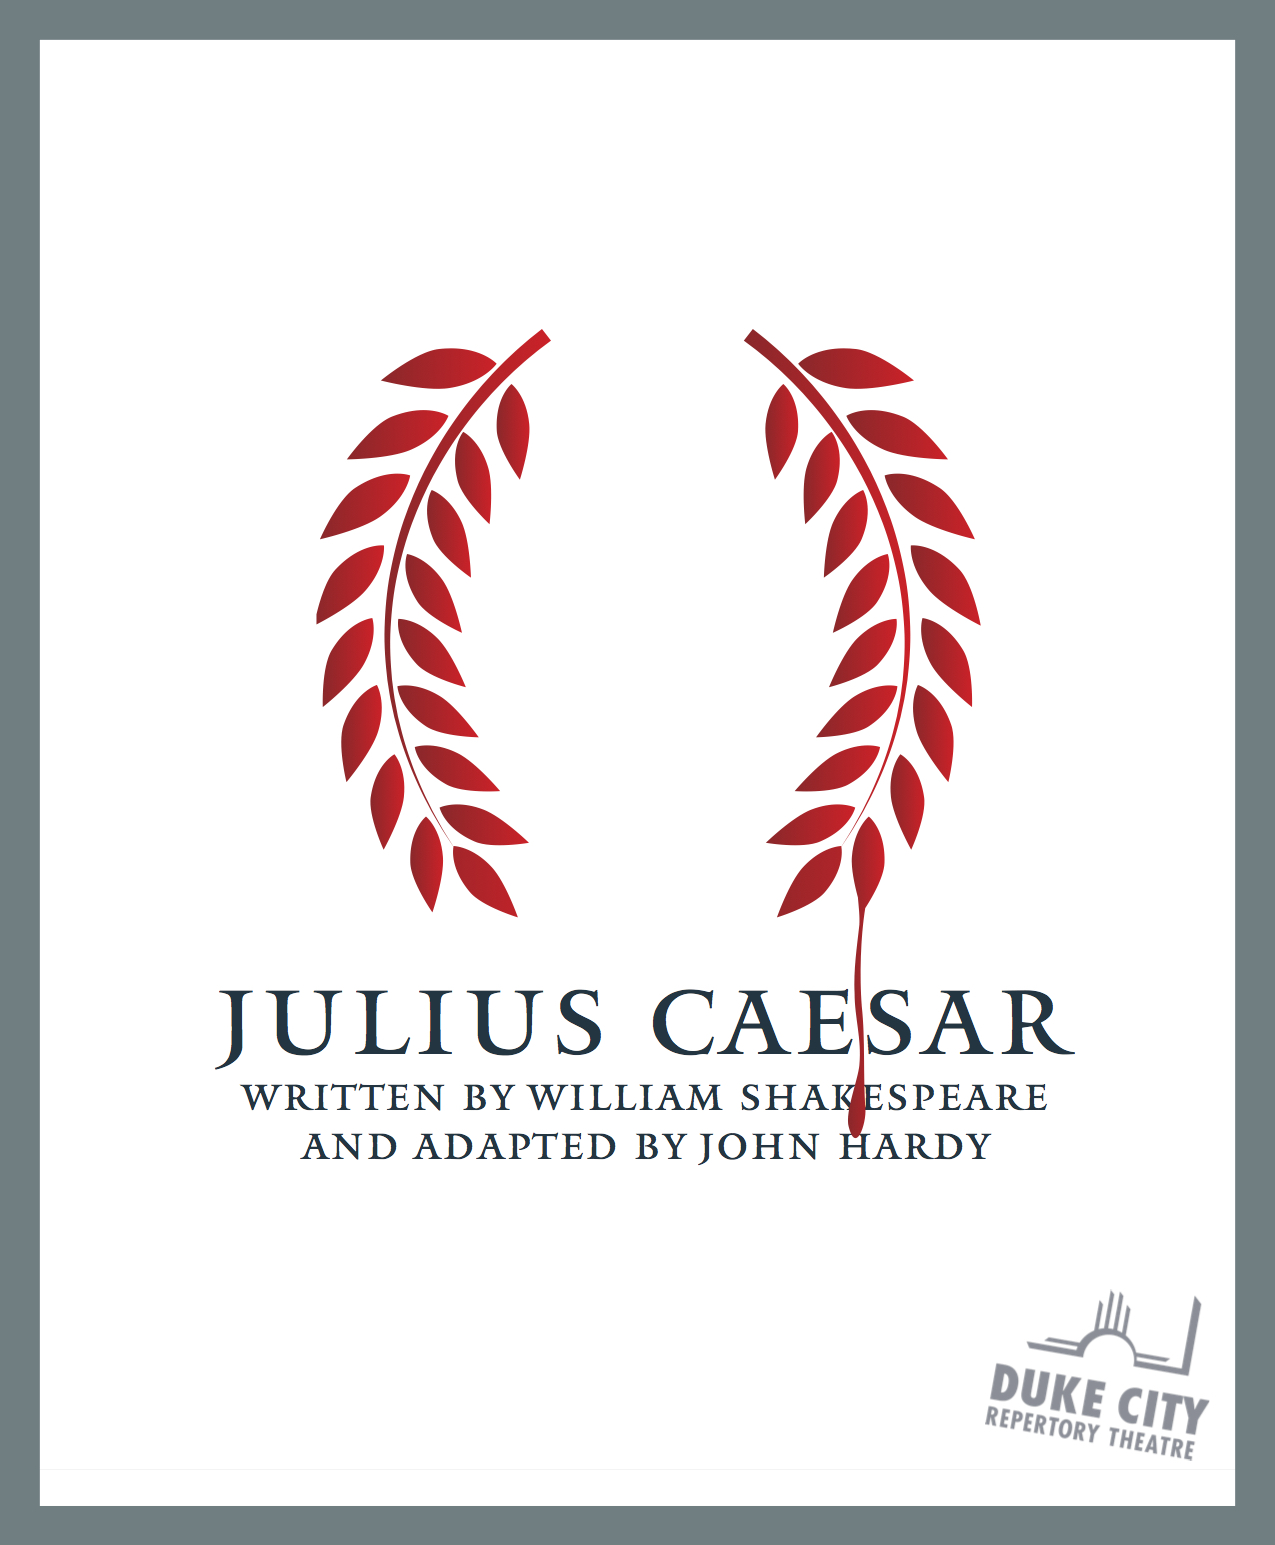 Julius Caesar by Duke City Repertory Theatre